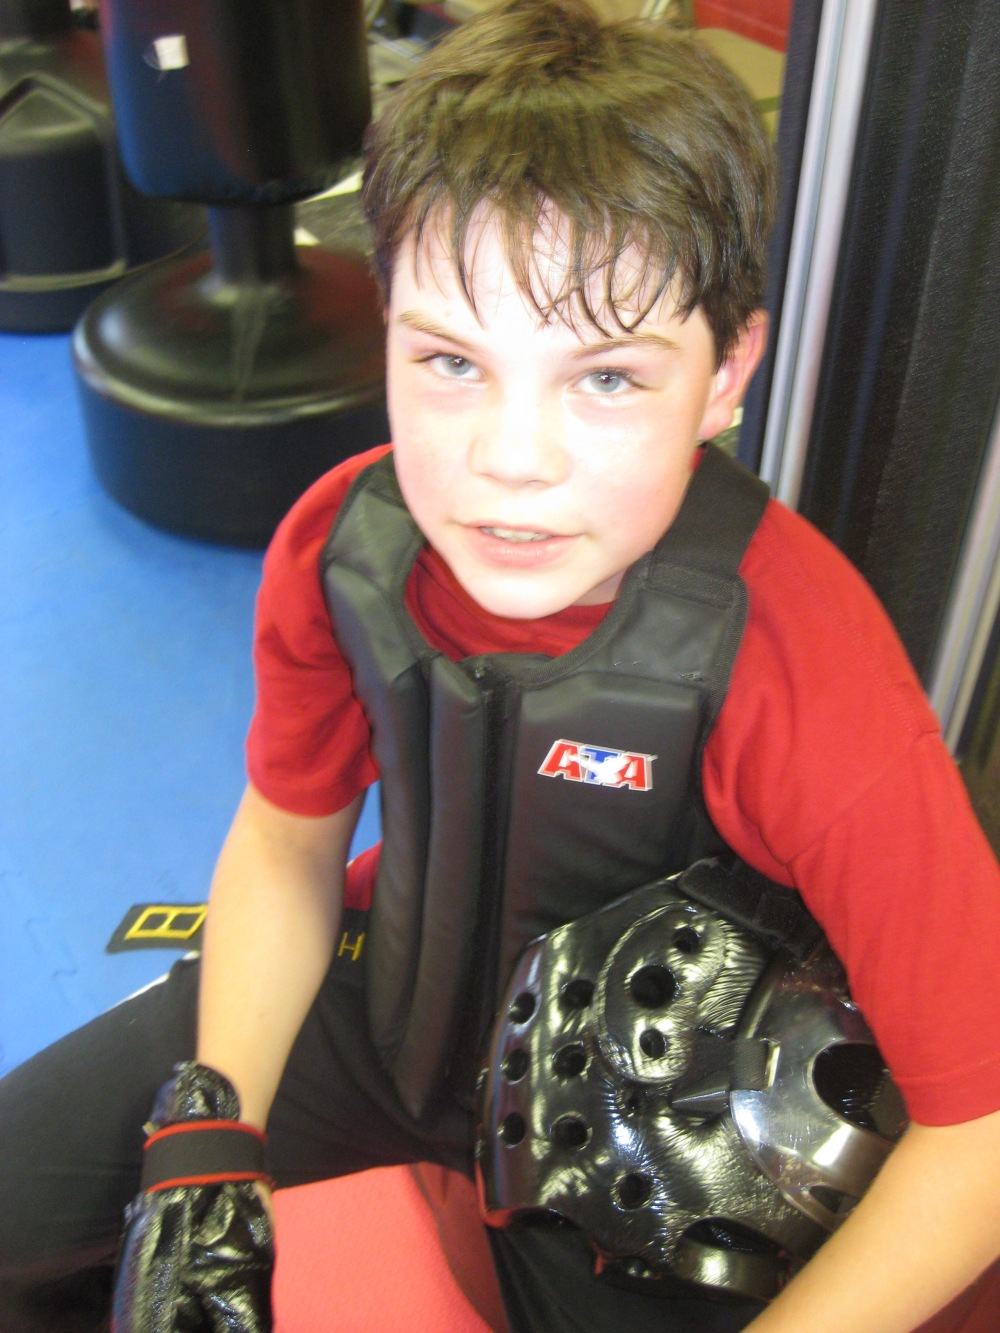 My tough guy Micah.  In this picture he is resting after a few rounds of sparring in karate.